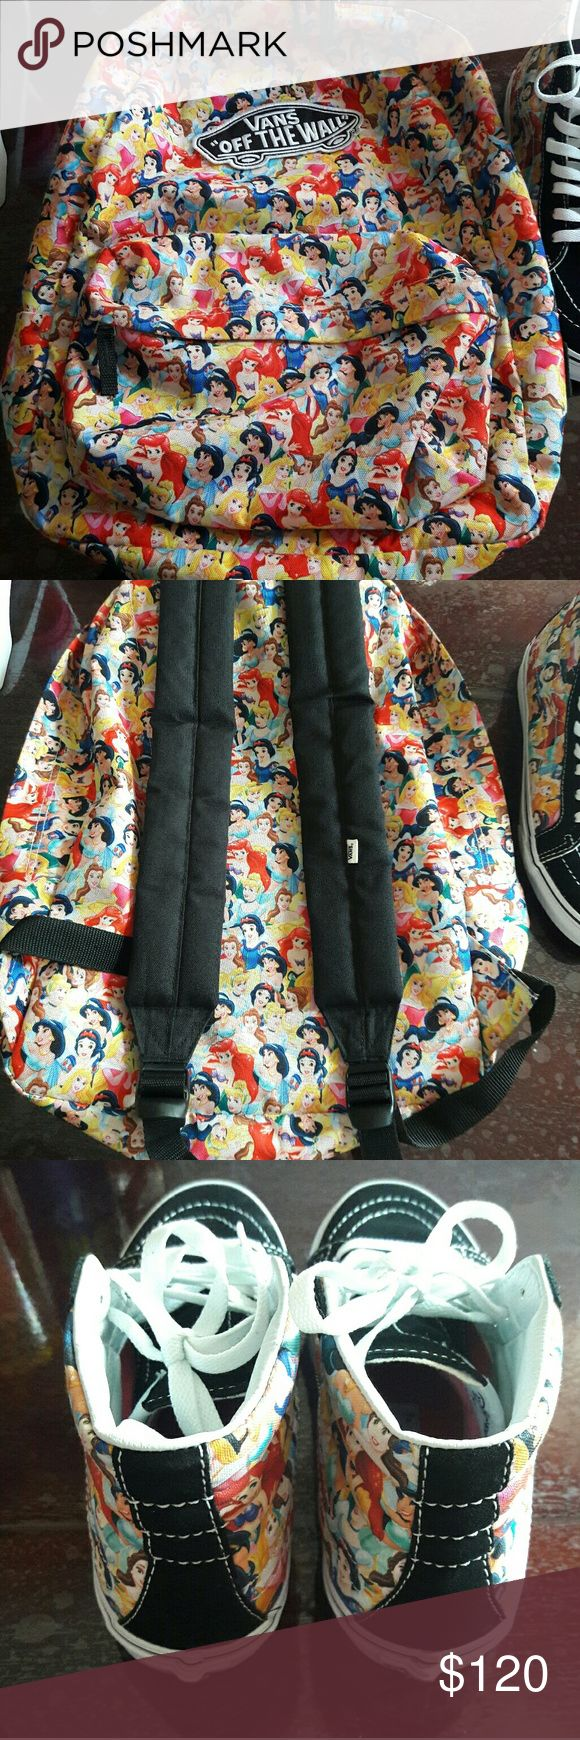 Vans Disney Princess Backpack & Shoes! Vans Disney princess edition shoes and matching backpack Shoes 8.5 woman/7men  Shoes are in new condition, very clean! Backpack in new condition  Both items are from smoke free/pet free Disney loving home. Both items are in new condition.  Open to offers Vans Bags Backpacks